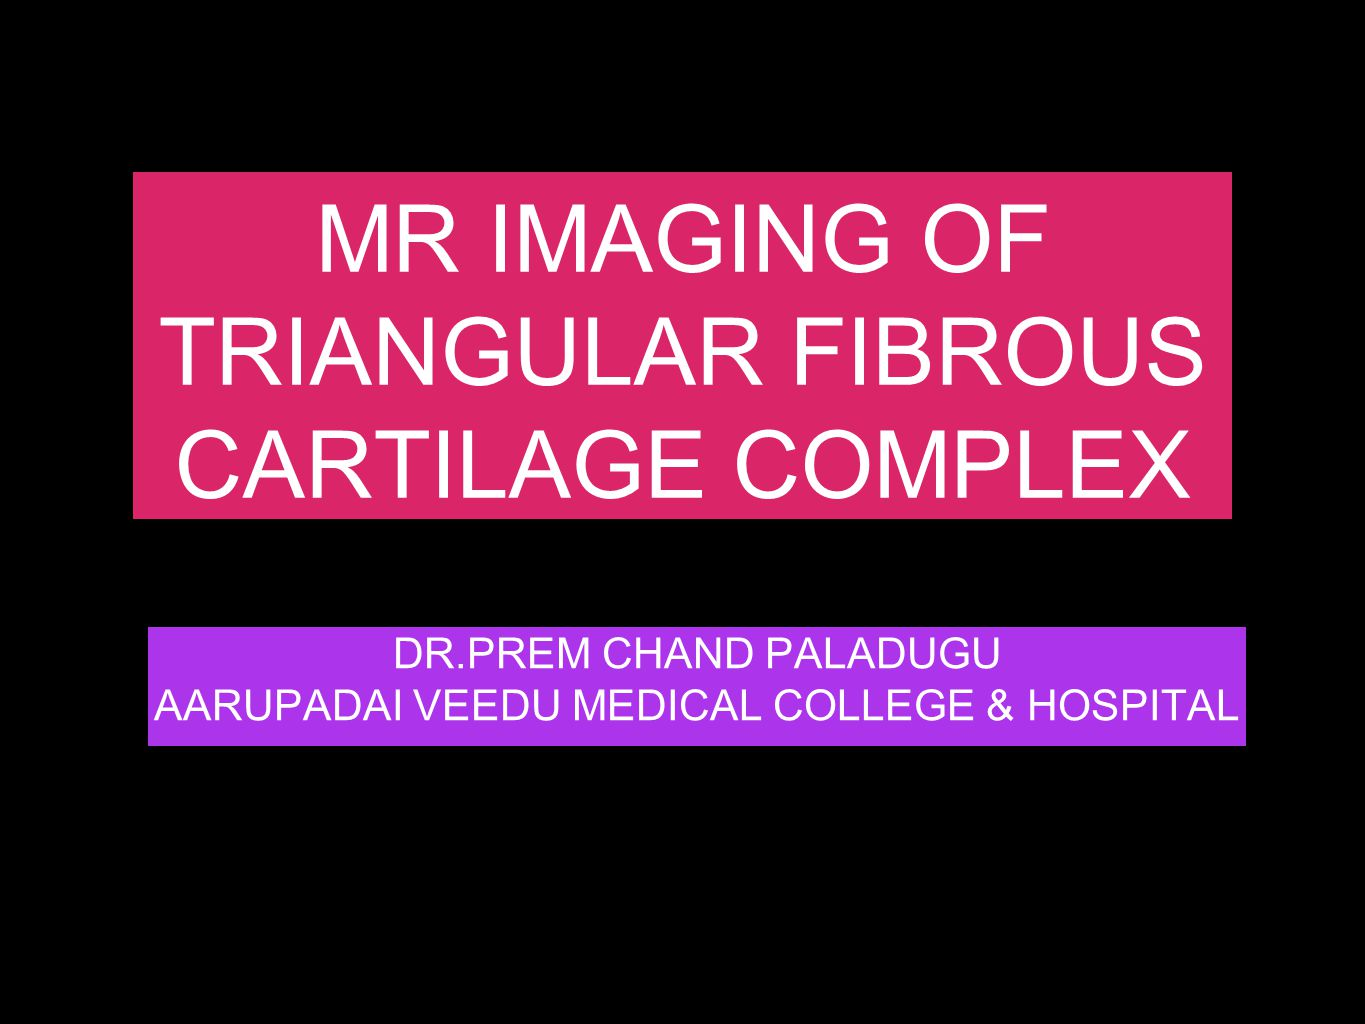 MR IMAGING OF TRIANGULAR FIBROUS CARTILAGE COMPLEX